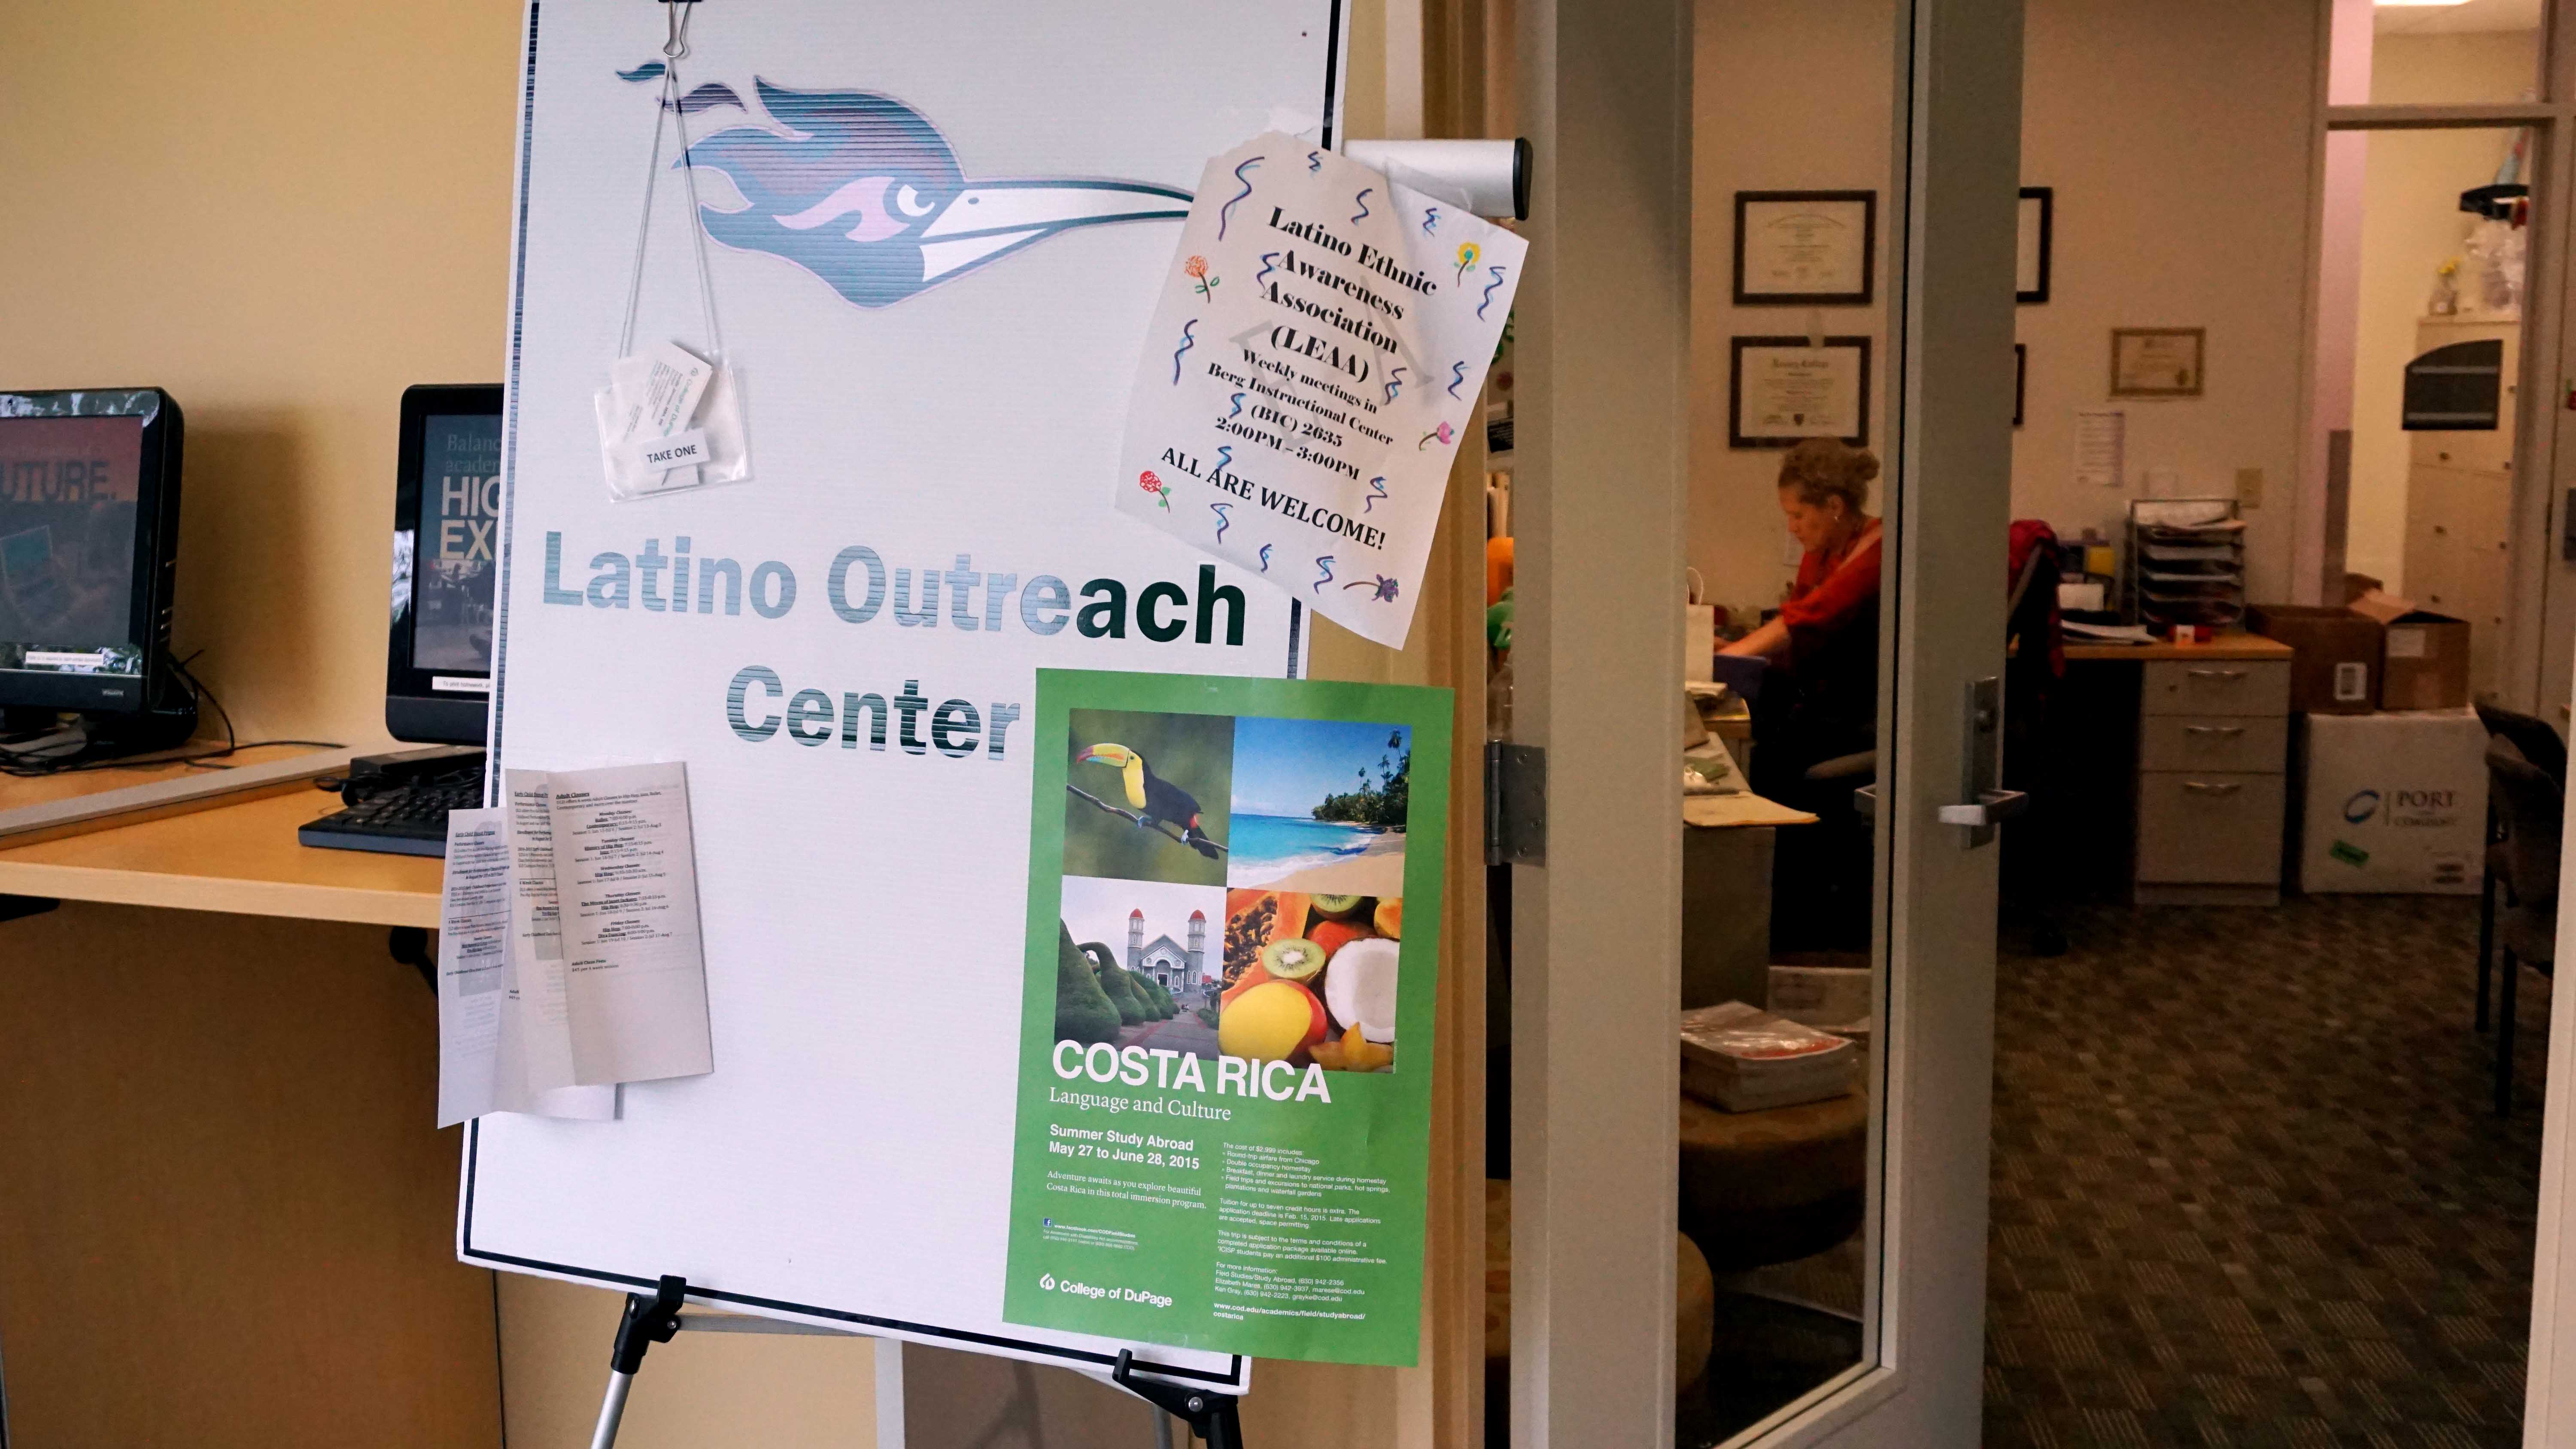 The Latino Outreach Center is located in the Student Services Center.